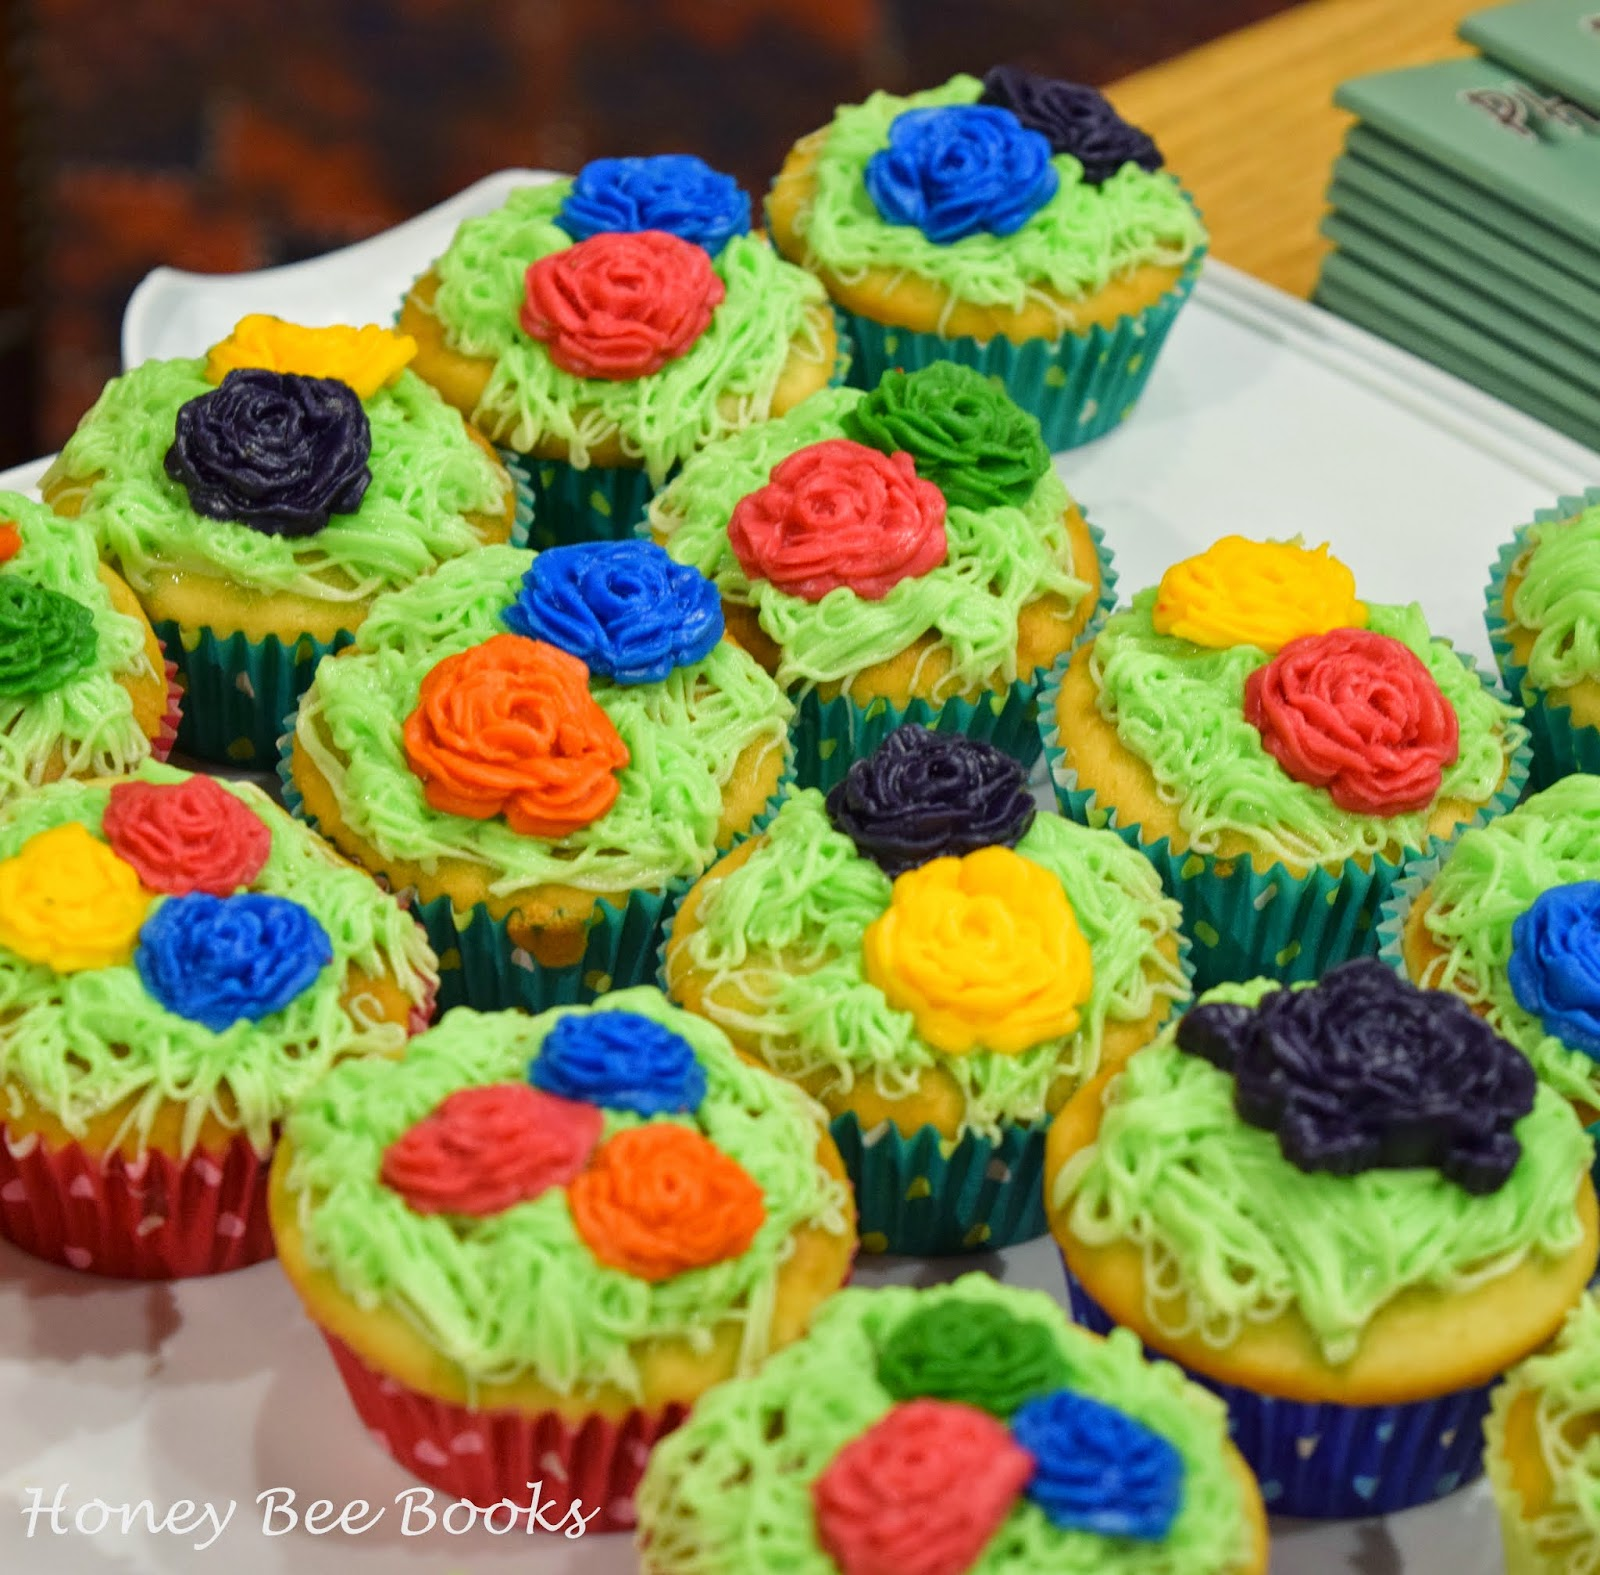 Flower cupcakes at the book launch of Clyde's Prickly Ride